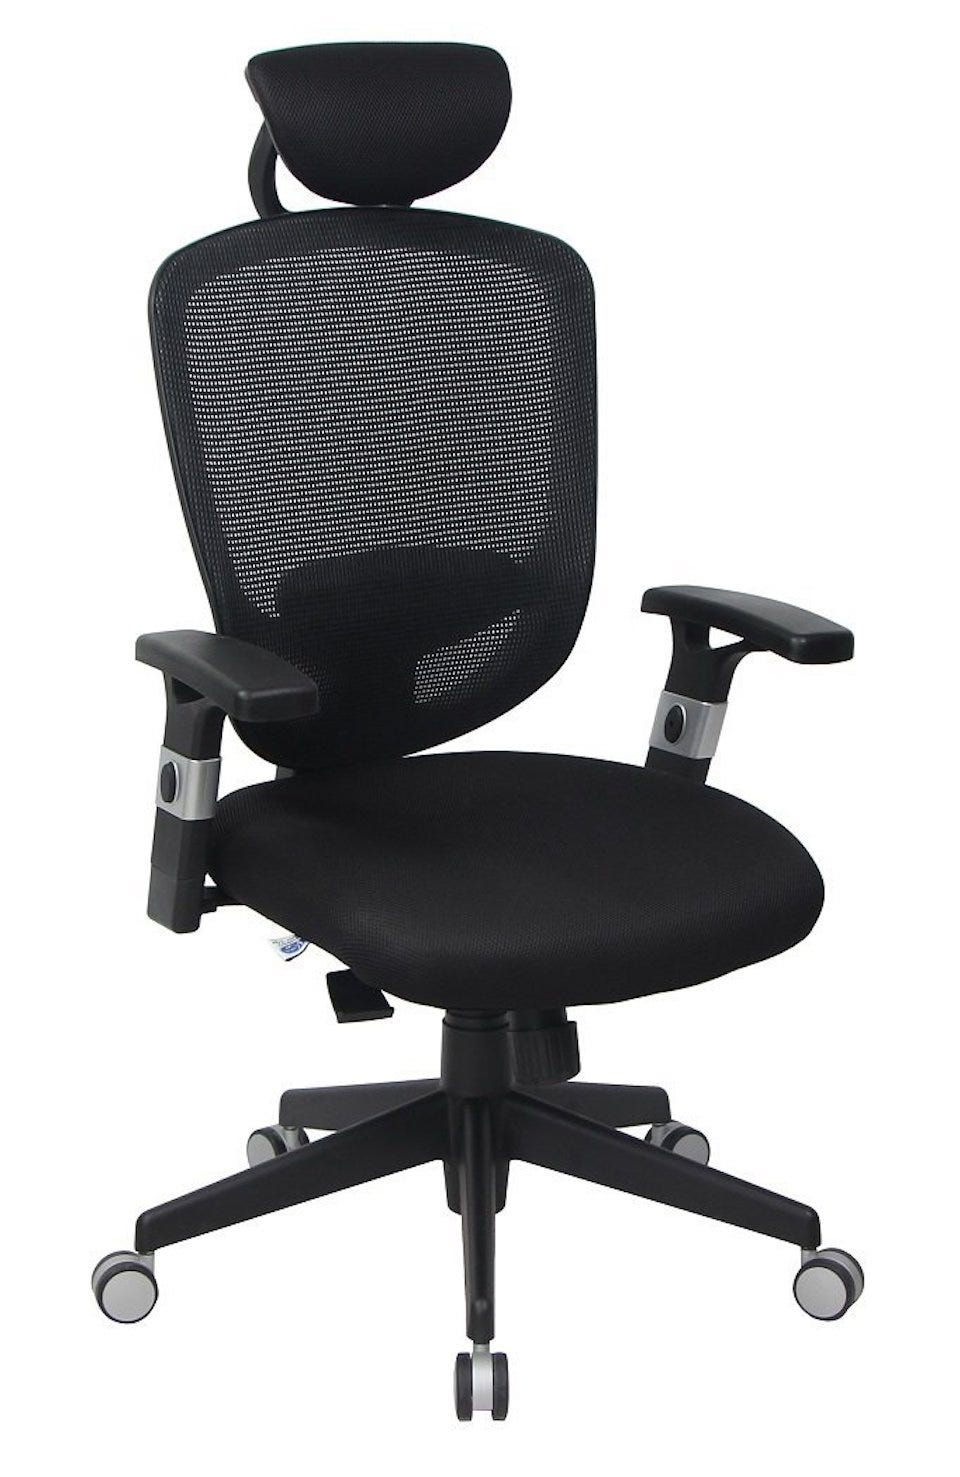 Best For Multiple Features Viva Office High Back Mesh Executive Chair 188